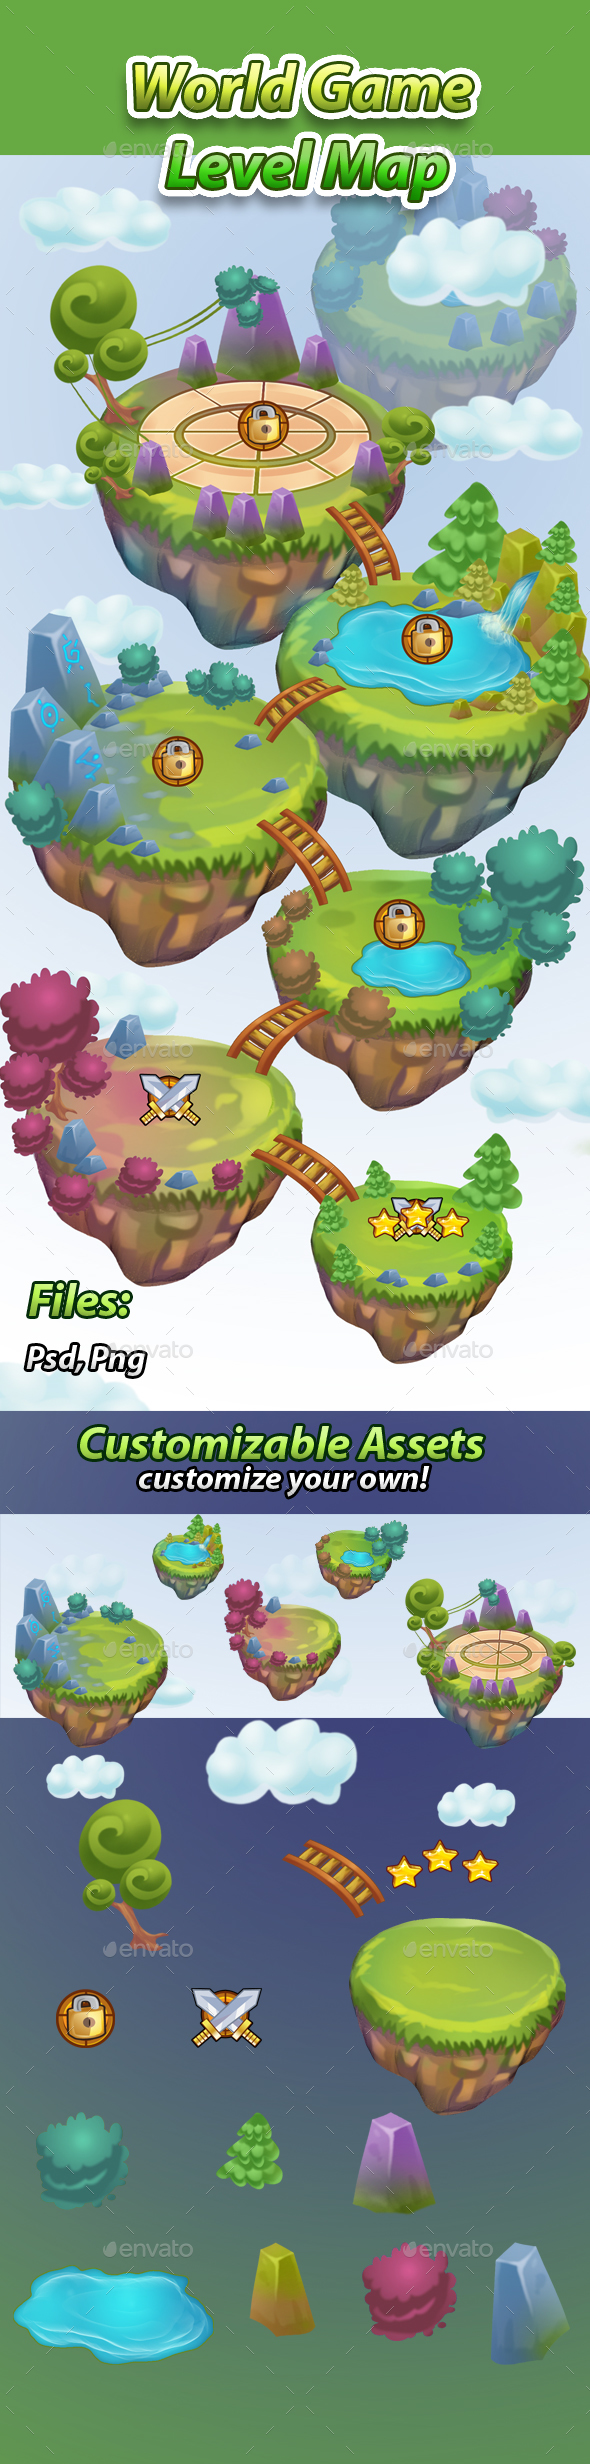 World Game Level Map Assets - Miscellaneous Game Assets